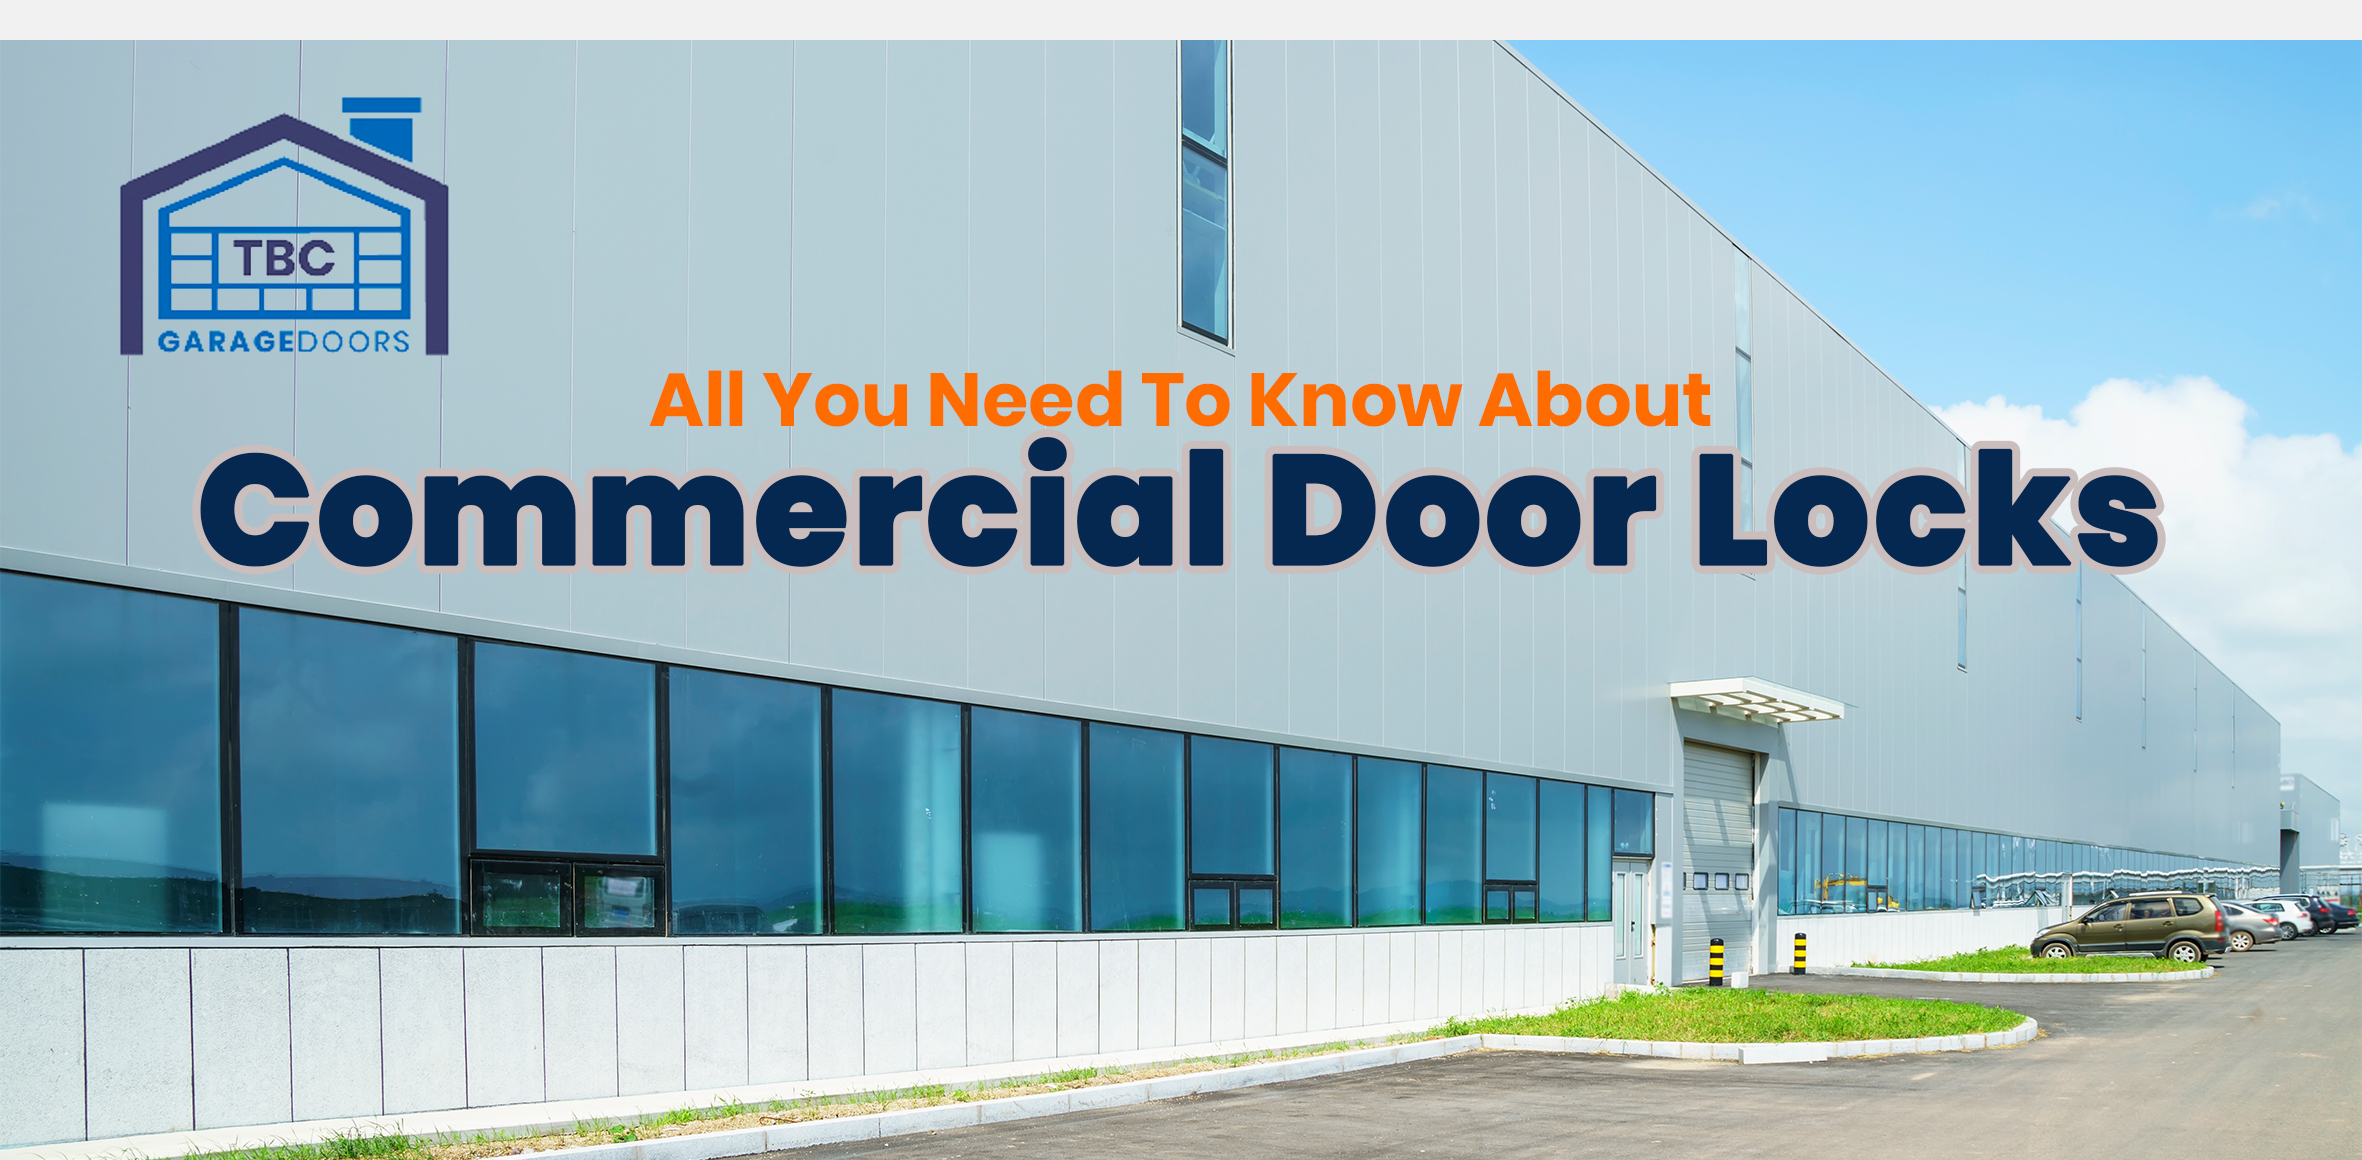 All You Need To Know About Commercial Door Locks